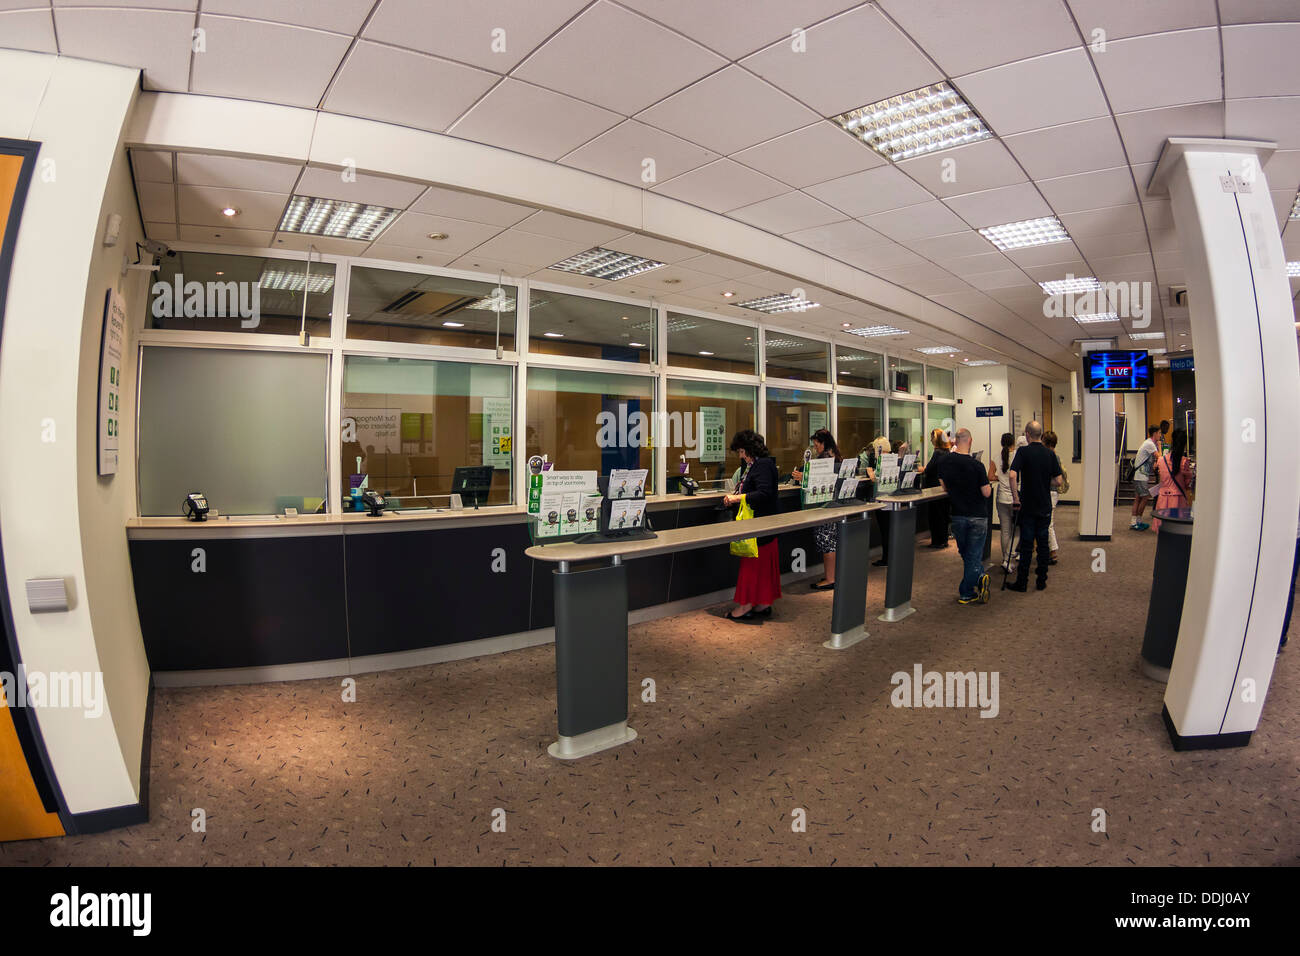 UK Bank Interieur, fisheye-Objektiv Stockfoto, Bild: 60017075 - Alamy